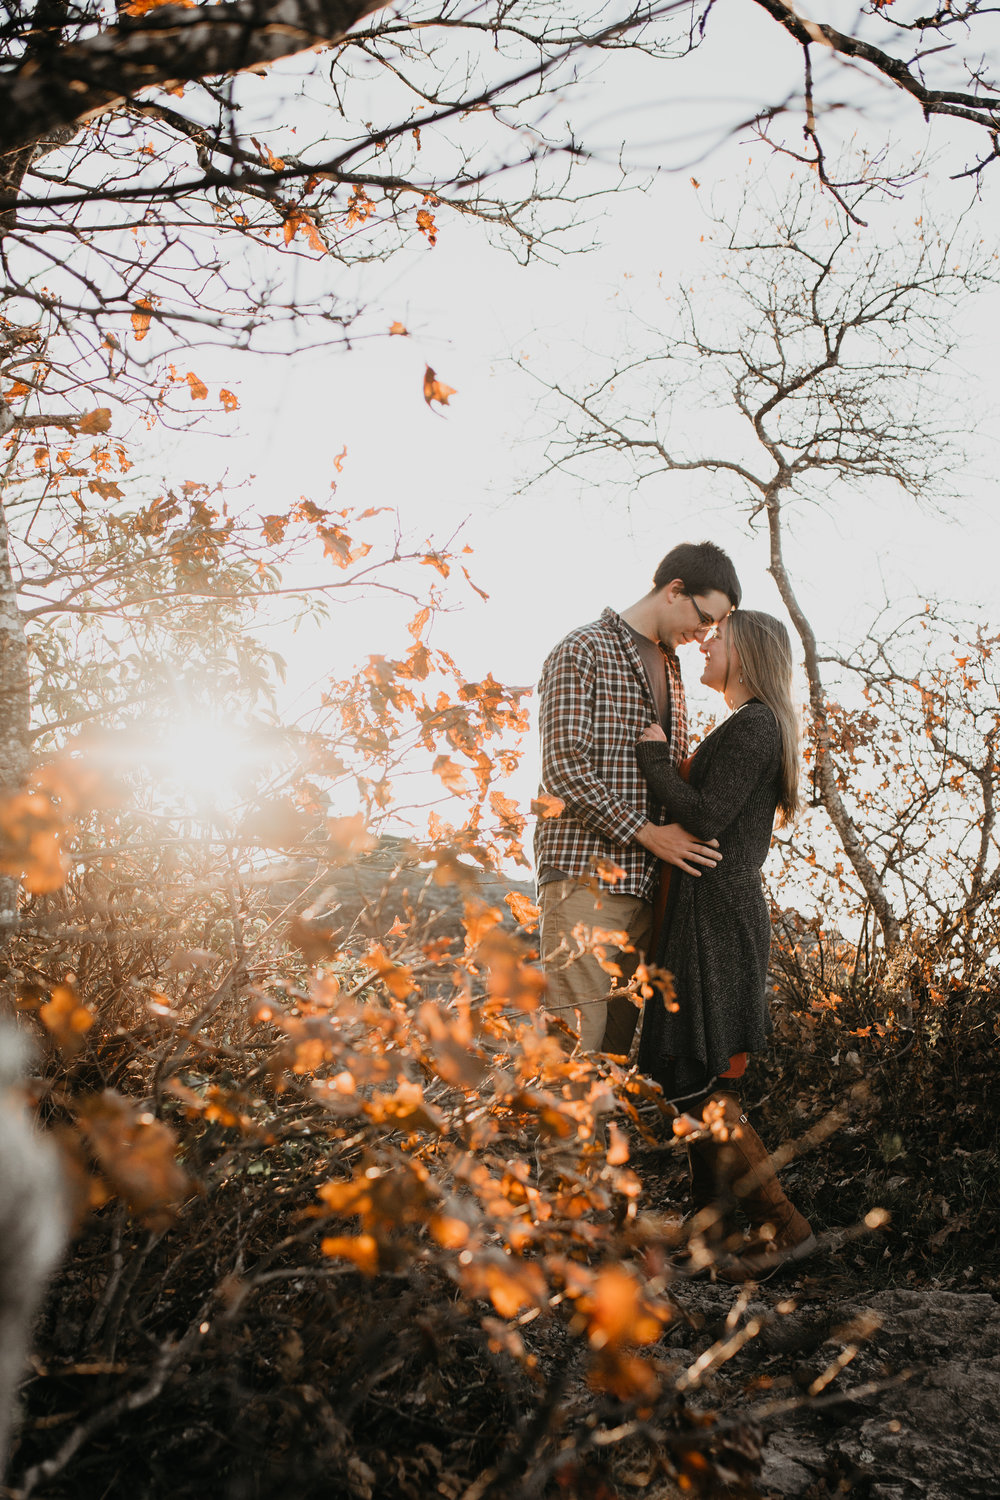 nicole-daacke-photography-shenandoah-national-park-adventure-engagement-session-with-fall-foliage-shenandoah-elopement-photographer-engagement-photos-in-virginia-charlottesville-national-park-adventure-elopement-photographer-3684.jpg